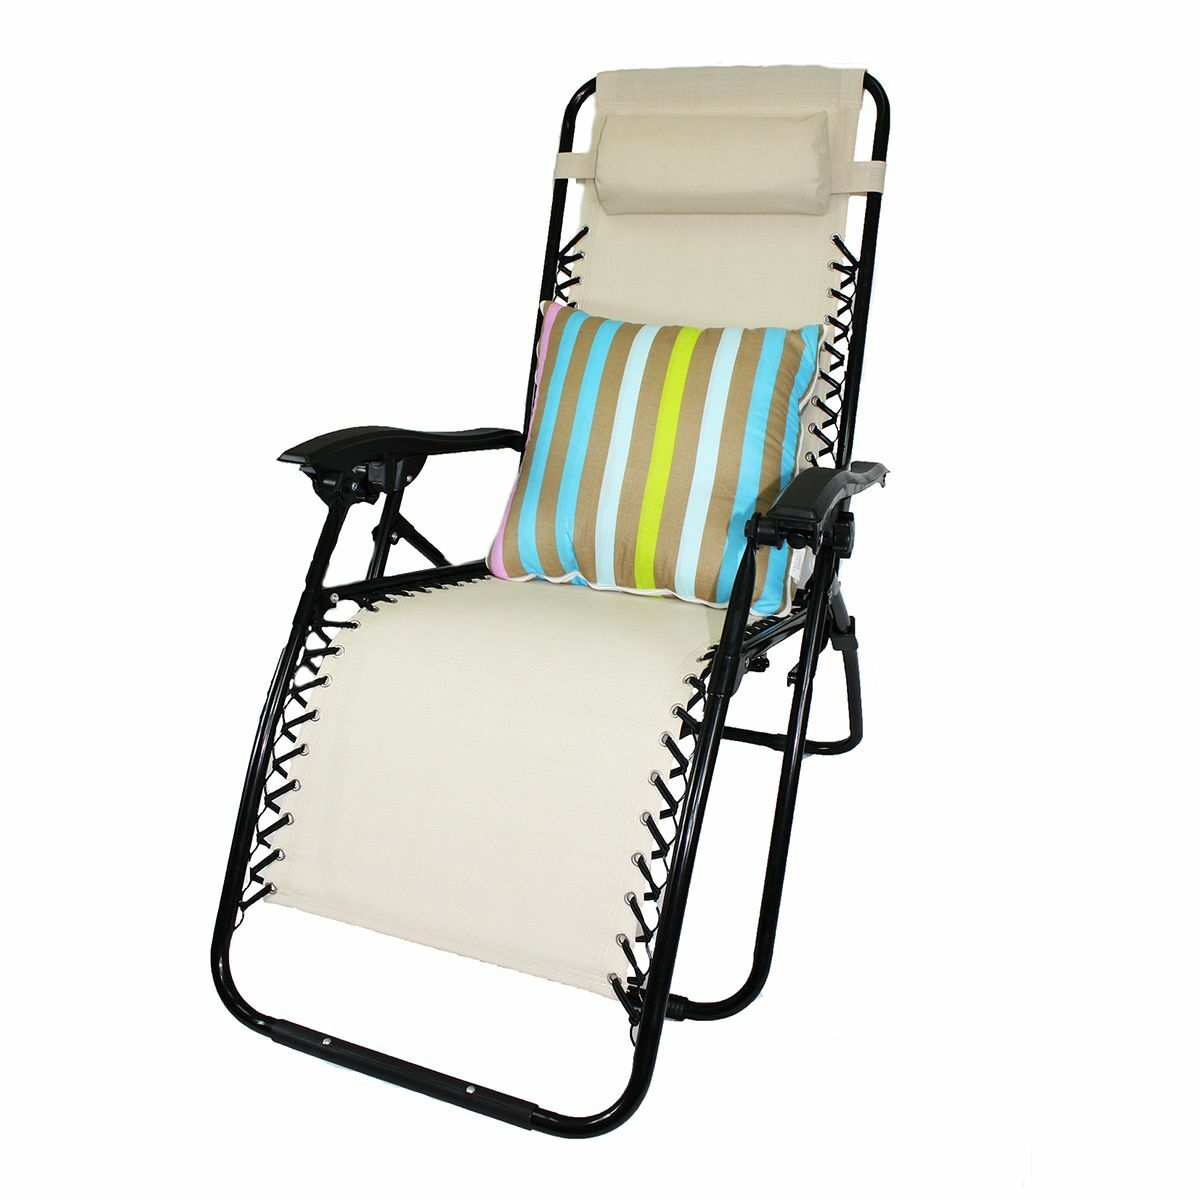 Lounge Chair Recliner Patio Oudoor Chair 2in1 Pillow And